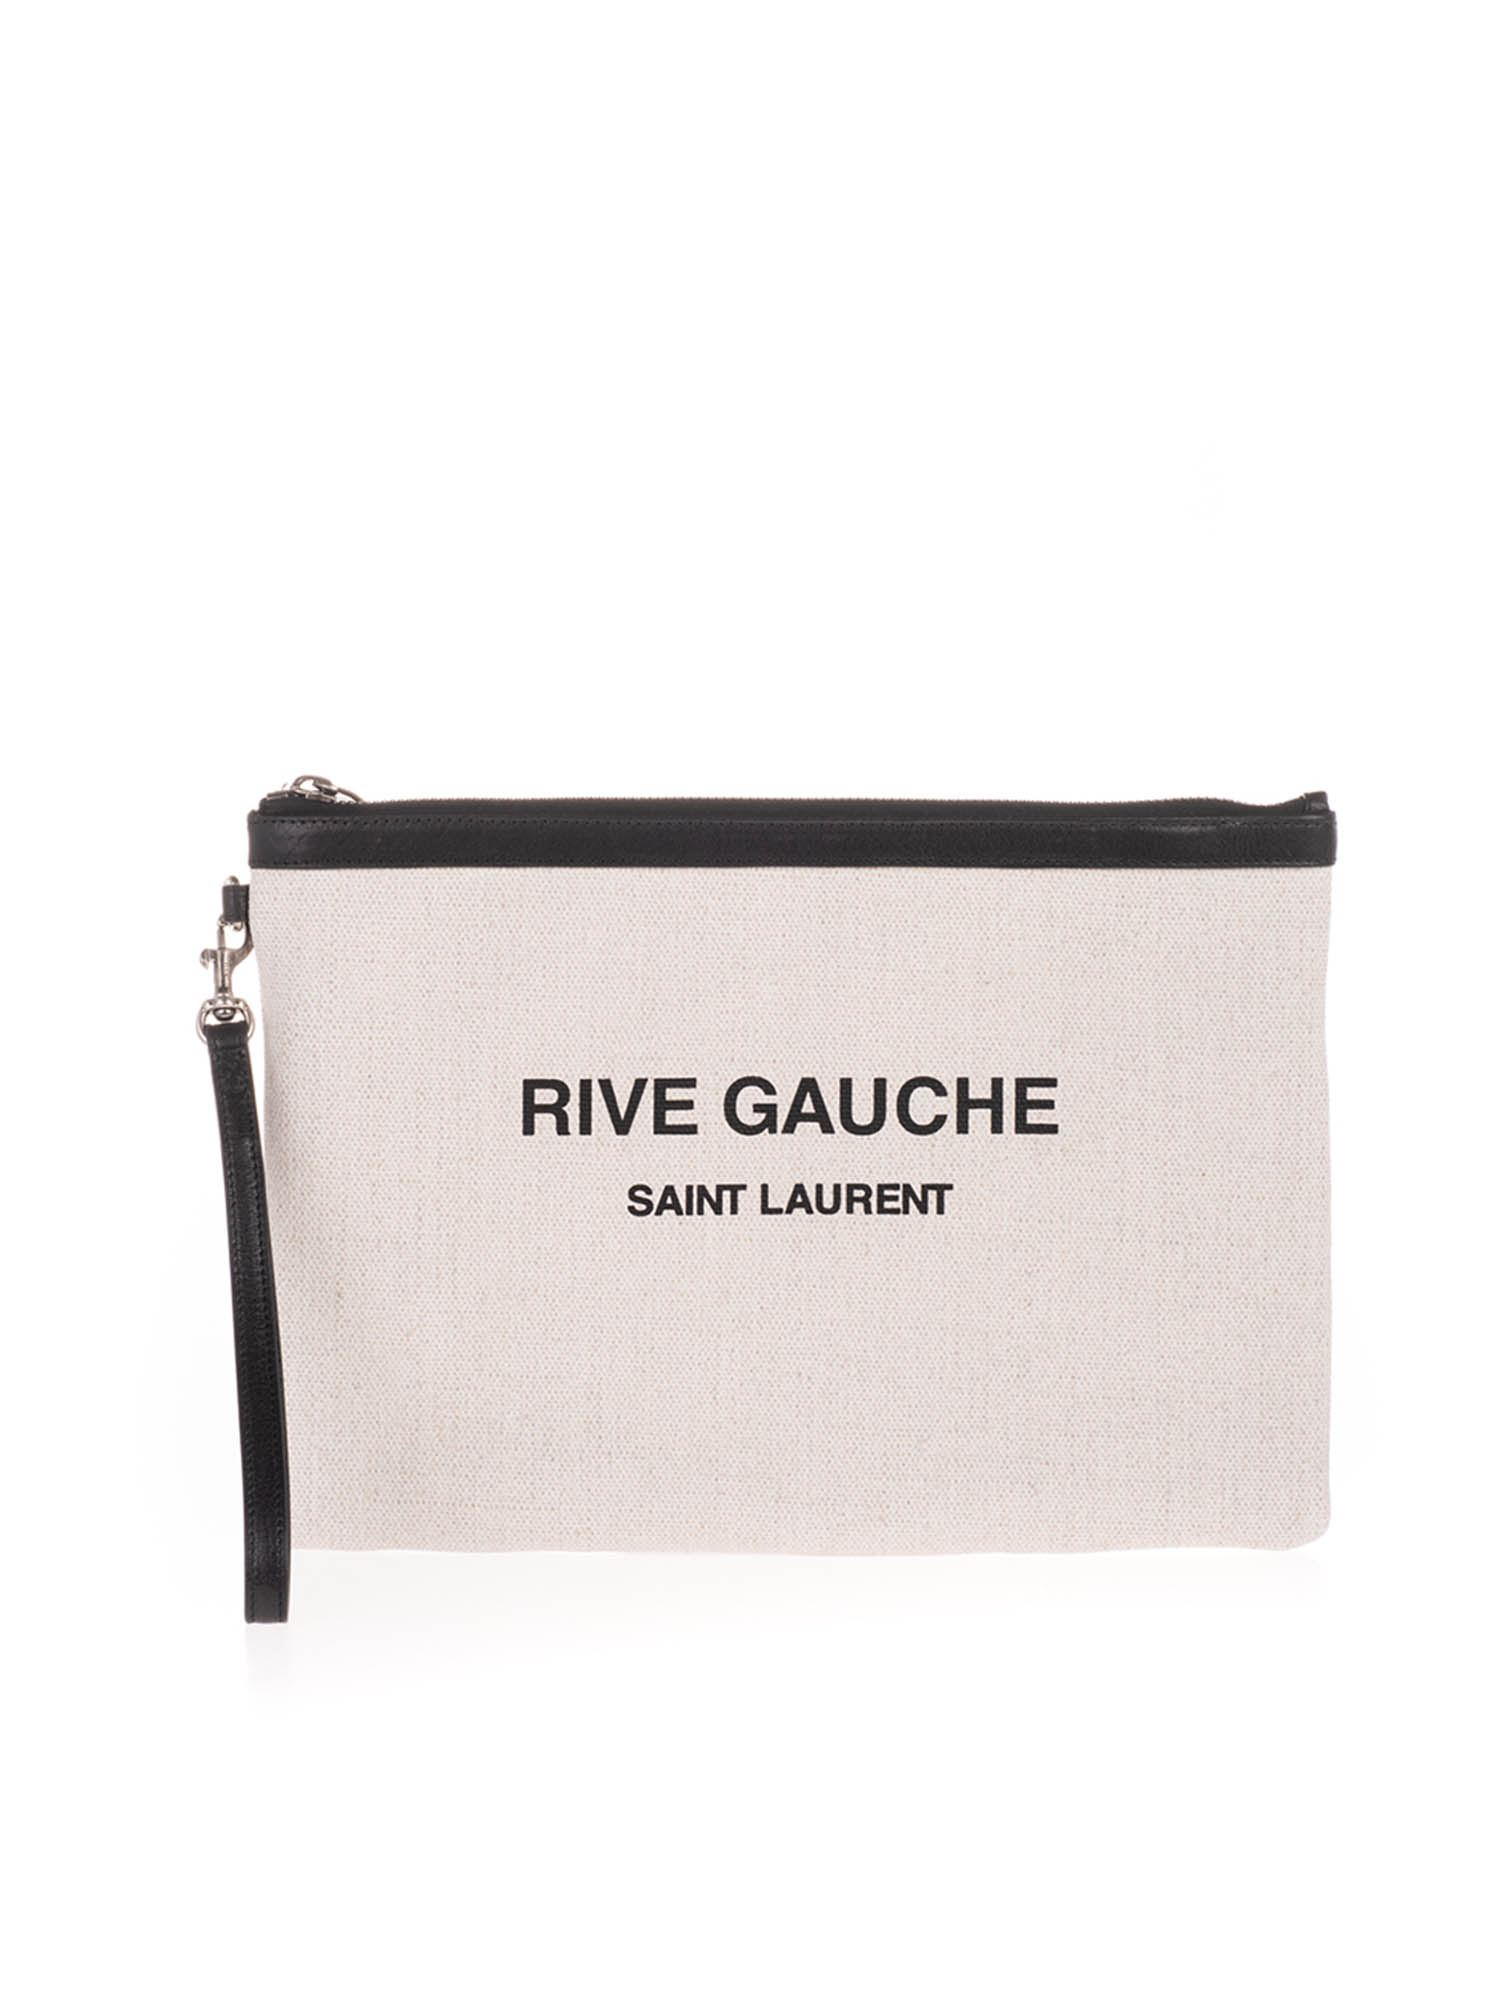 Saint Laurent RIVE GAUCHE CLUTCH BAG IN WHITE